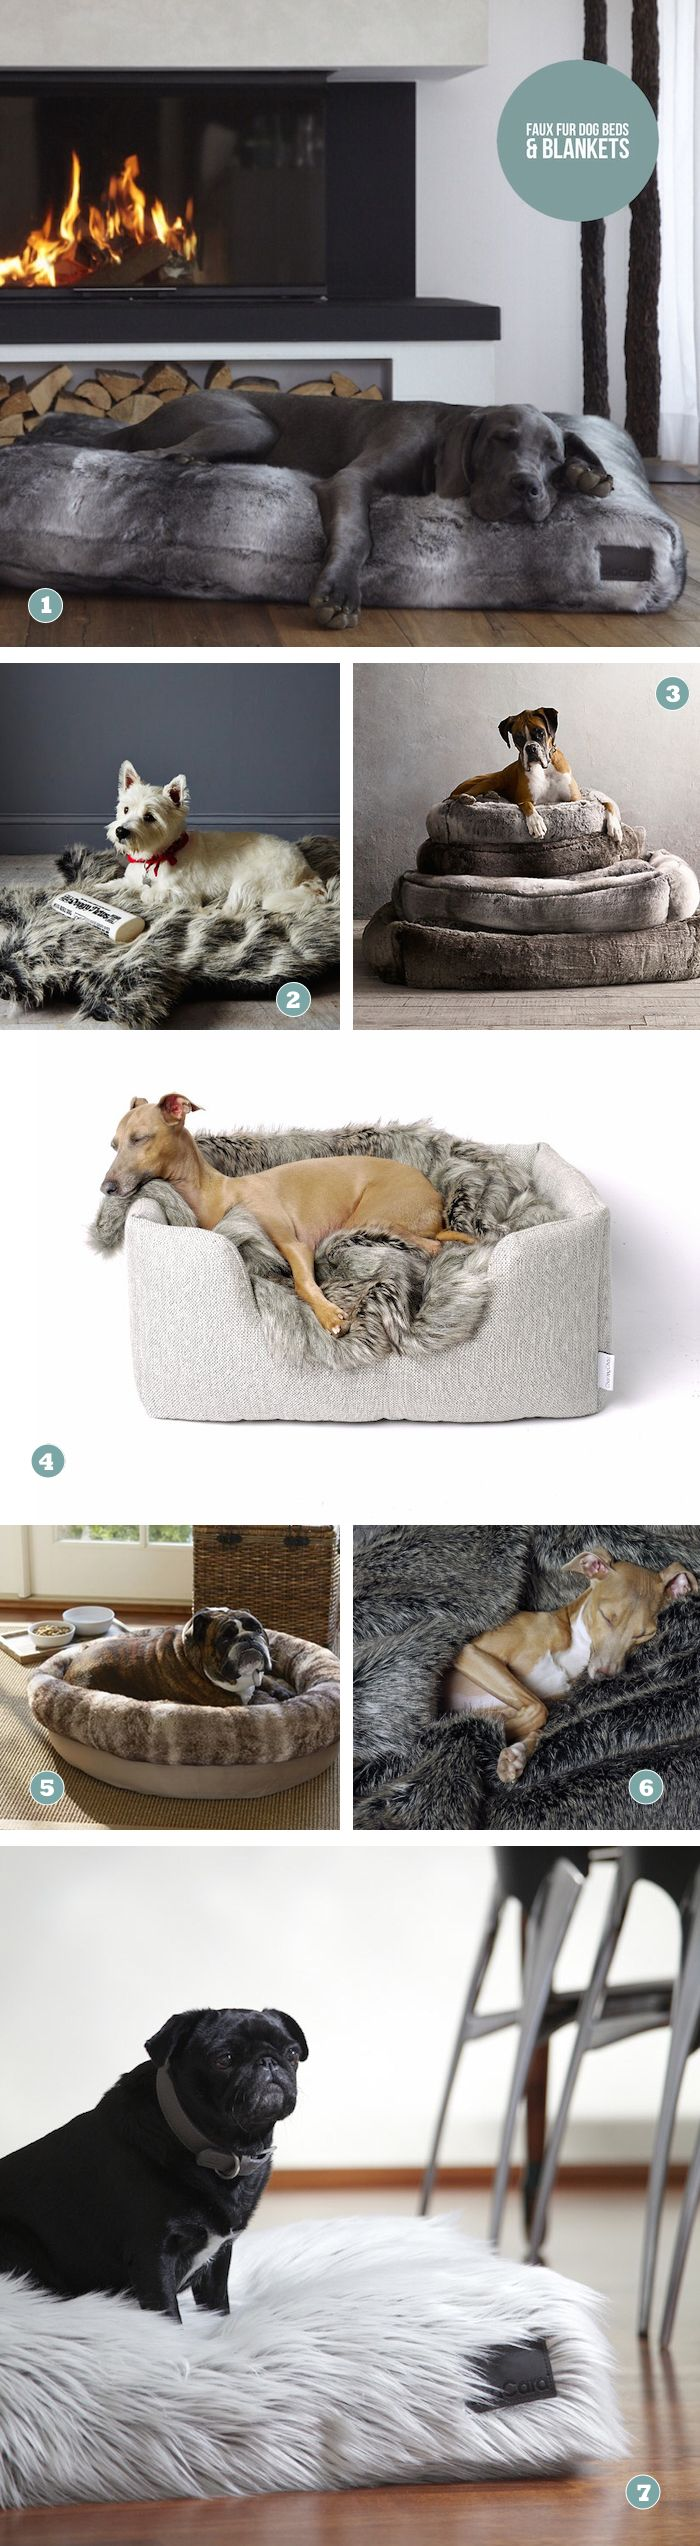 TRENDS Sumptuously Soft Faux Fur Dog Beds and Blankets is part of Trends Sumptuously Soft Faux Fur Dog Beds And Blankets - The temperature outside is dropping, so what could be better than snuggling up with a sumptuously soft faux fur blanket  Nothing   that's what! For pooches that love to get super cosy, …